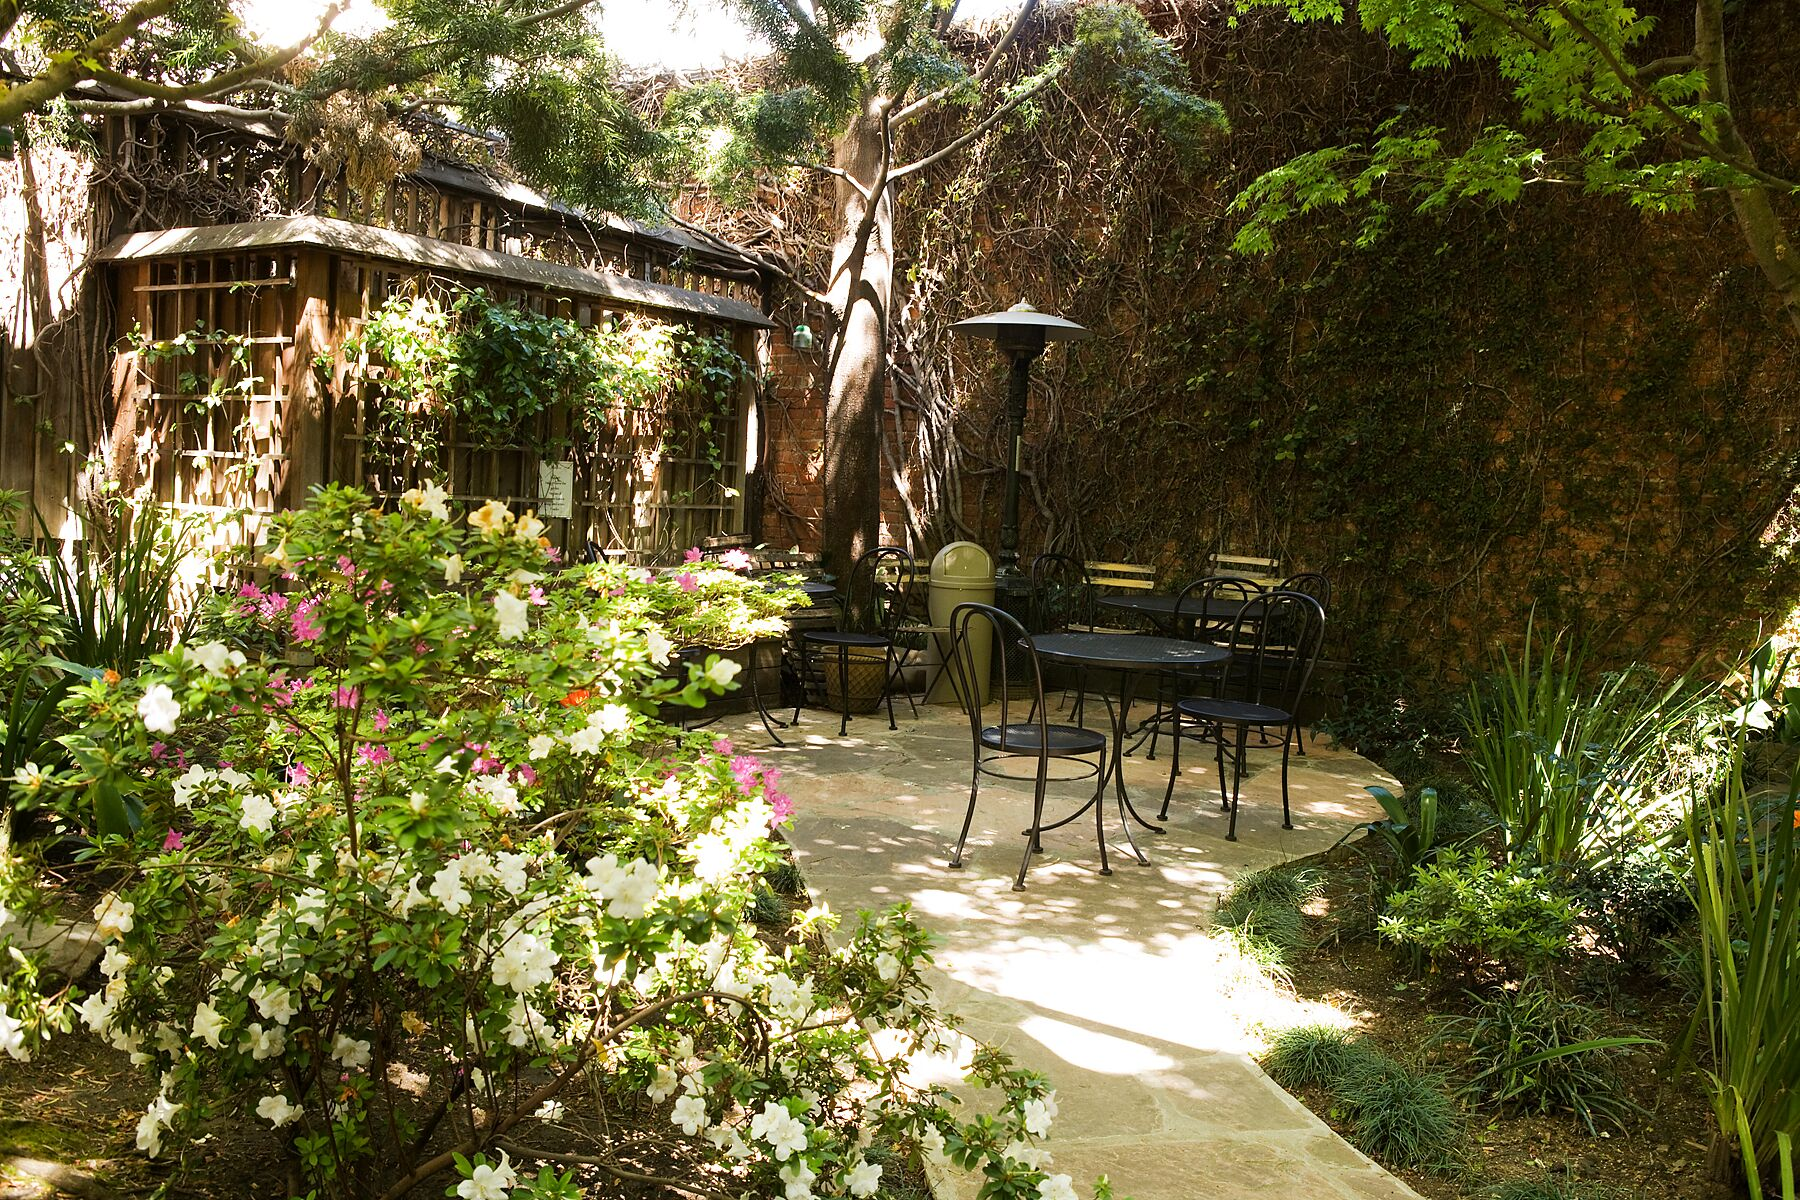 The dreamy patio behind Arlequin.